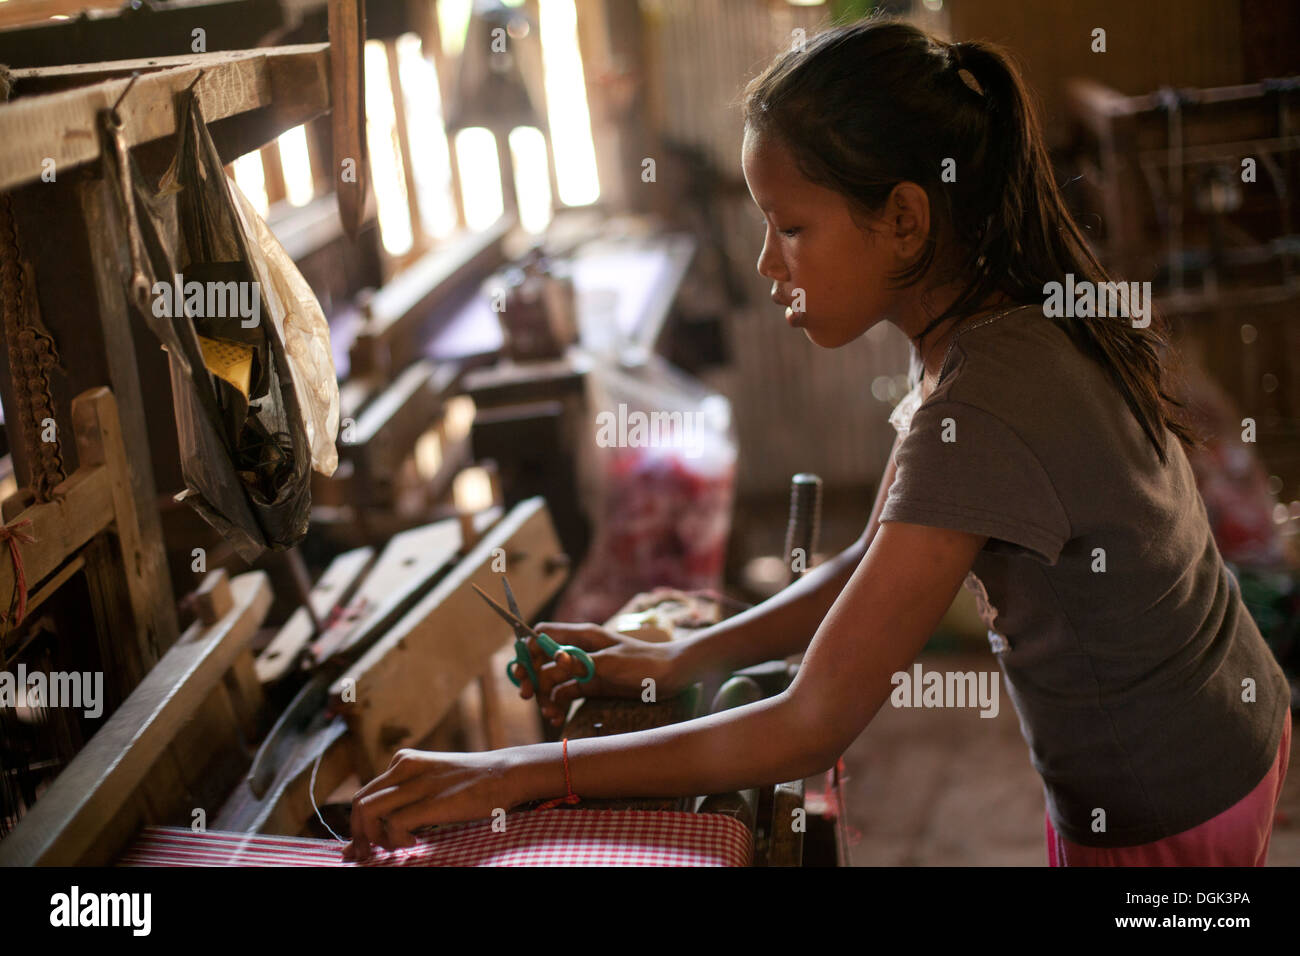 A young girl works in a village textile factory outside of Phnom Penh, Cambodia. Photos © Dennis Drenner 2013. - Stock Image